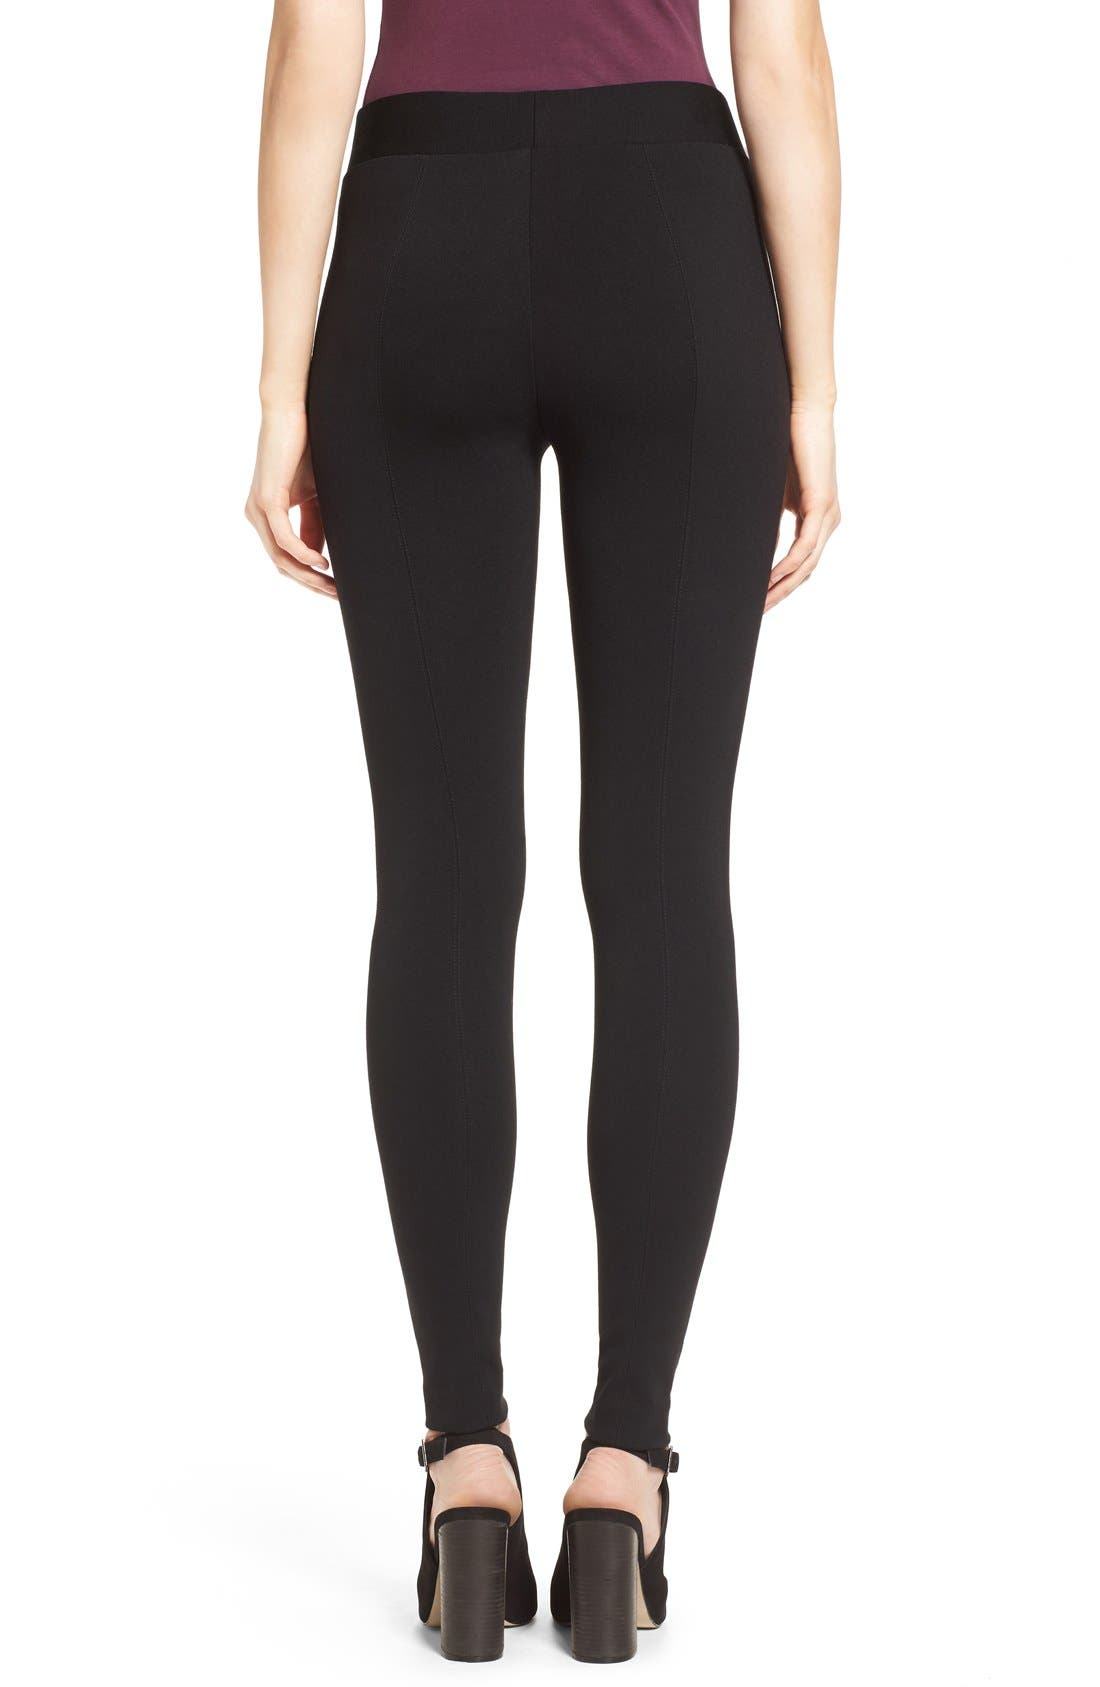 Alternate Image 2  - Two by Vince Camuto Seamed Back Leggings (Regular & Petite)